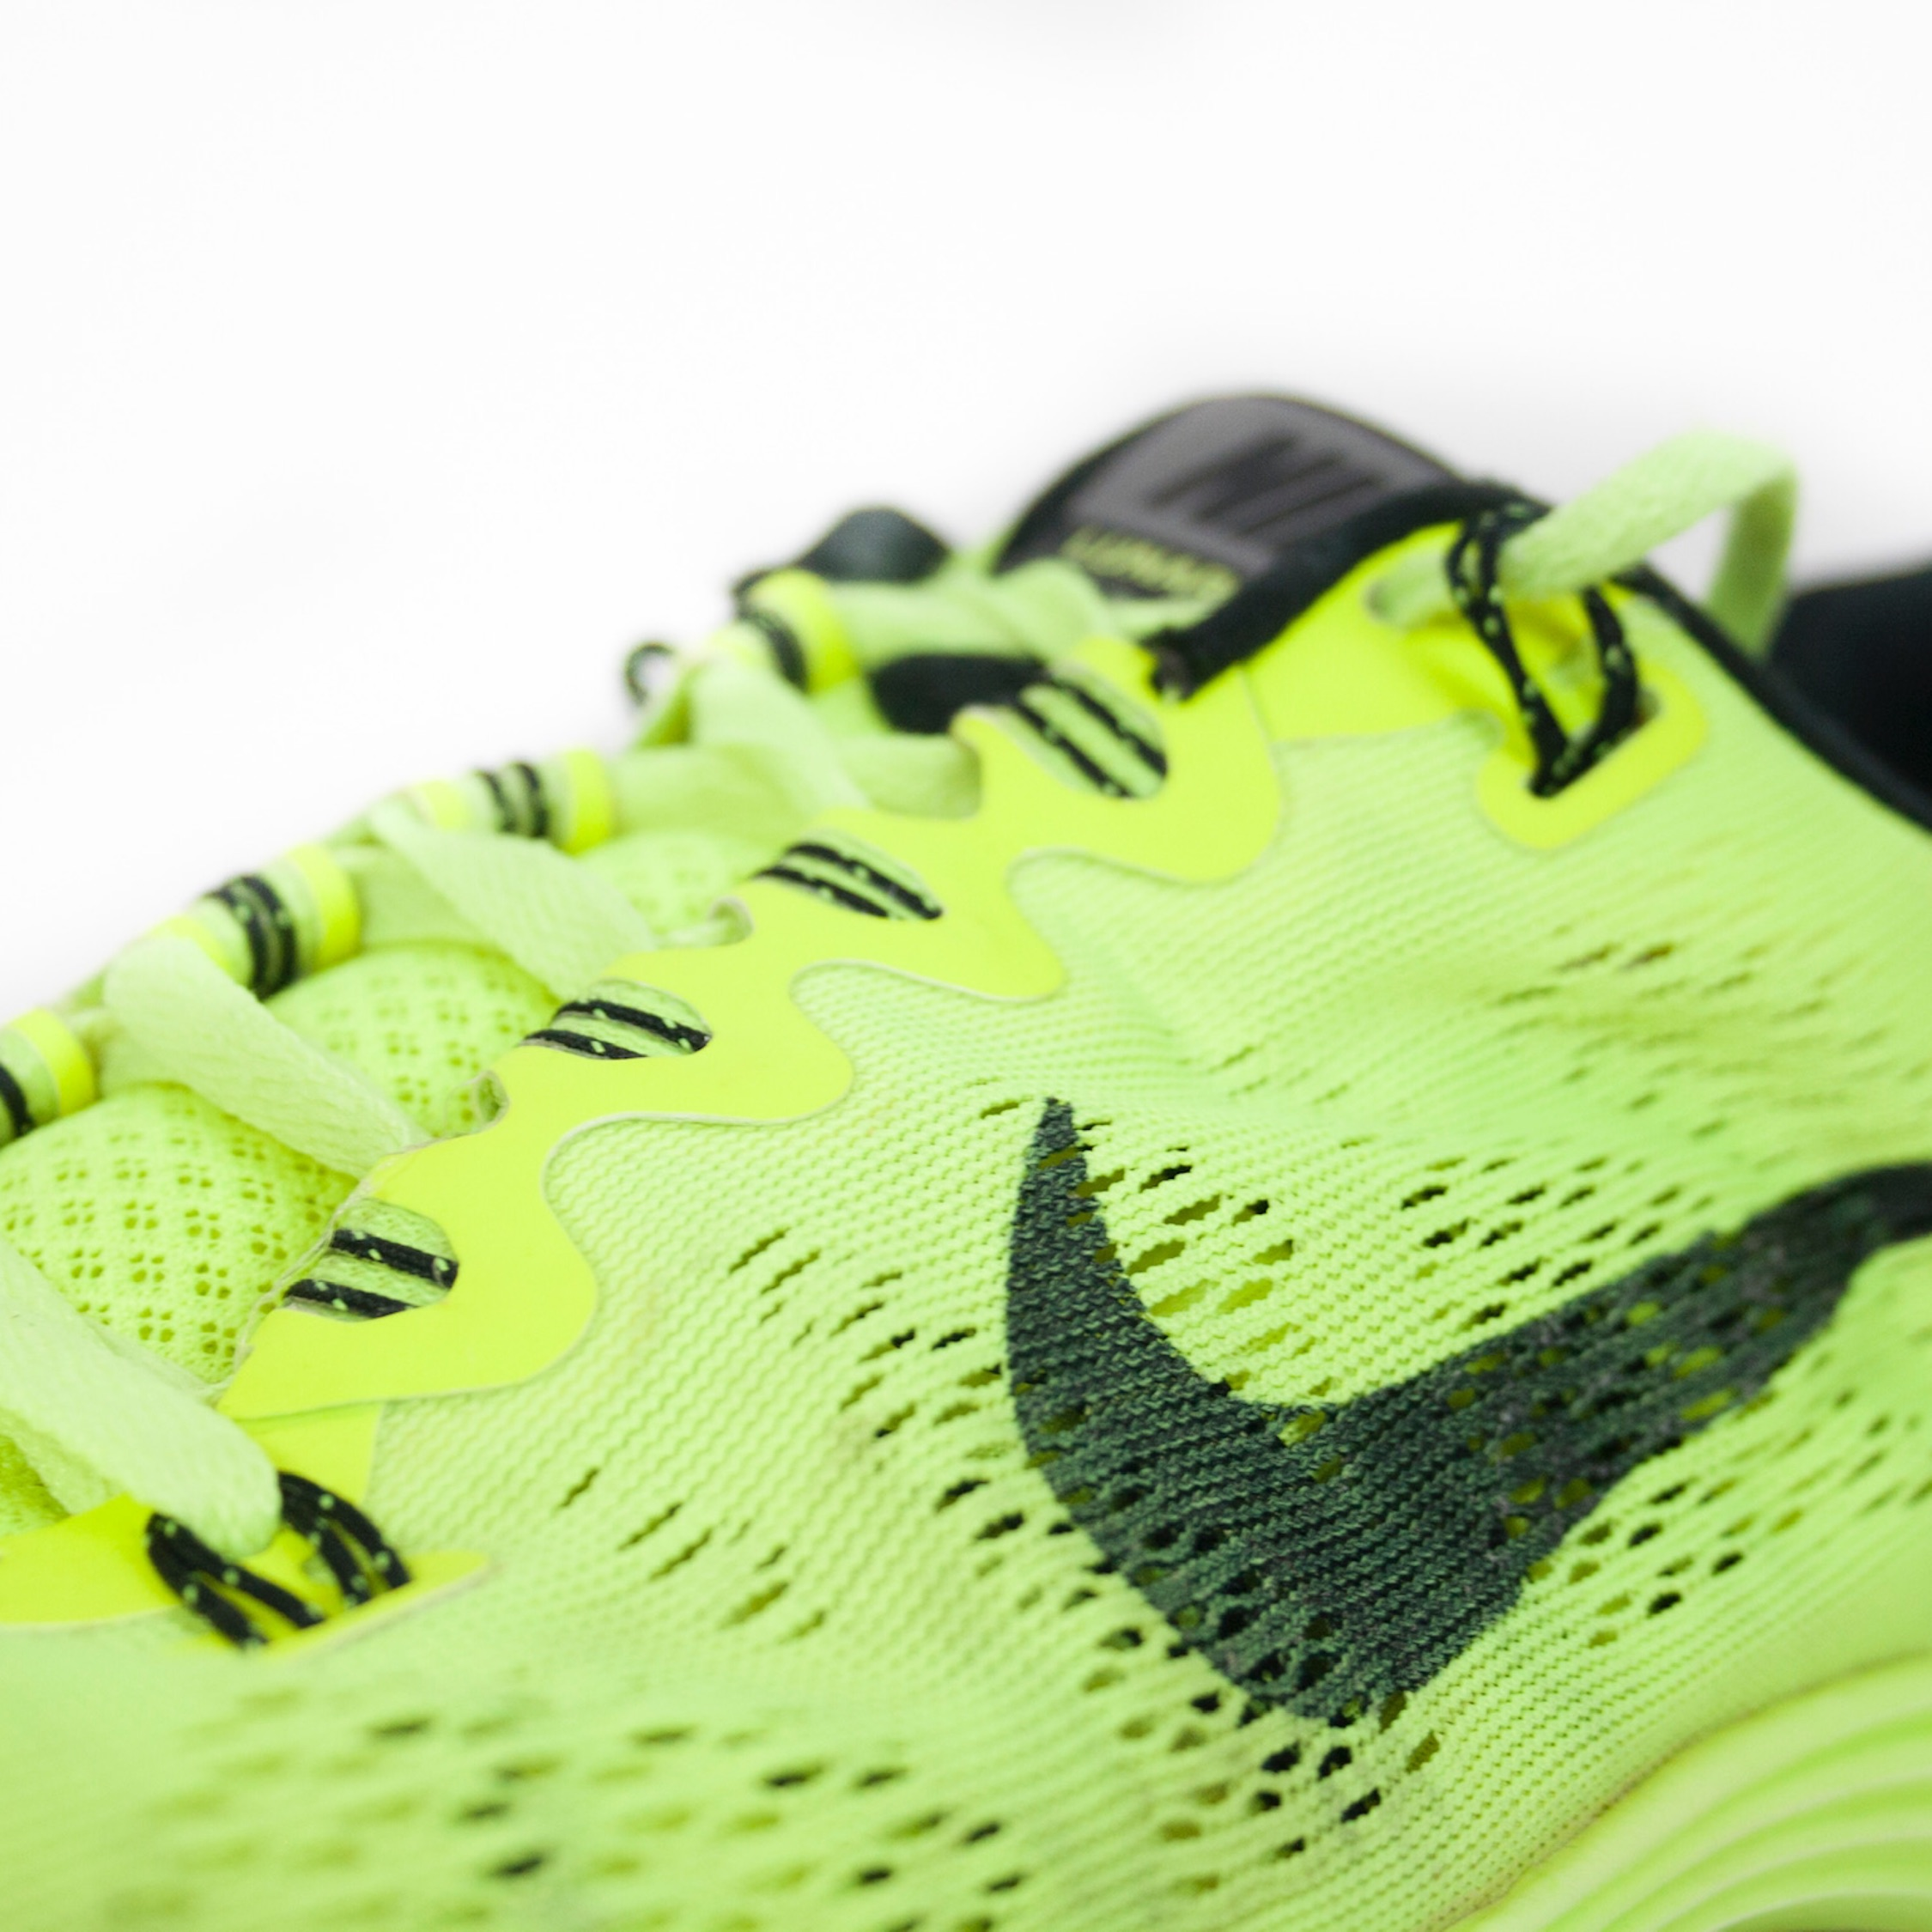 Fluorescent Yellow/Green Nike Trainers